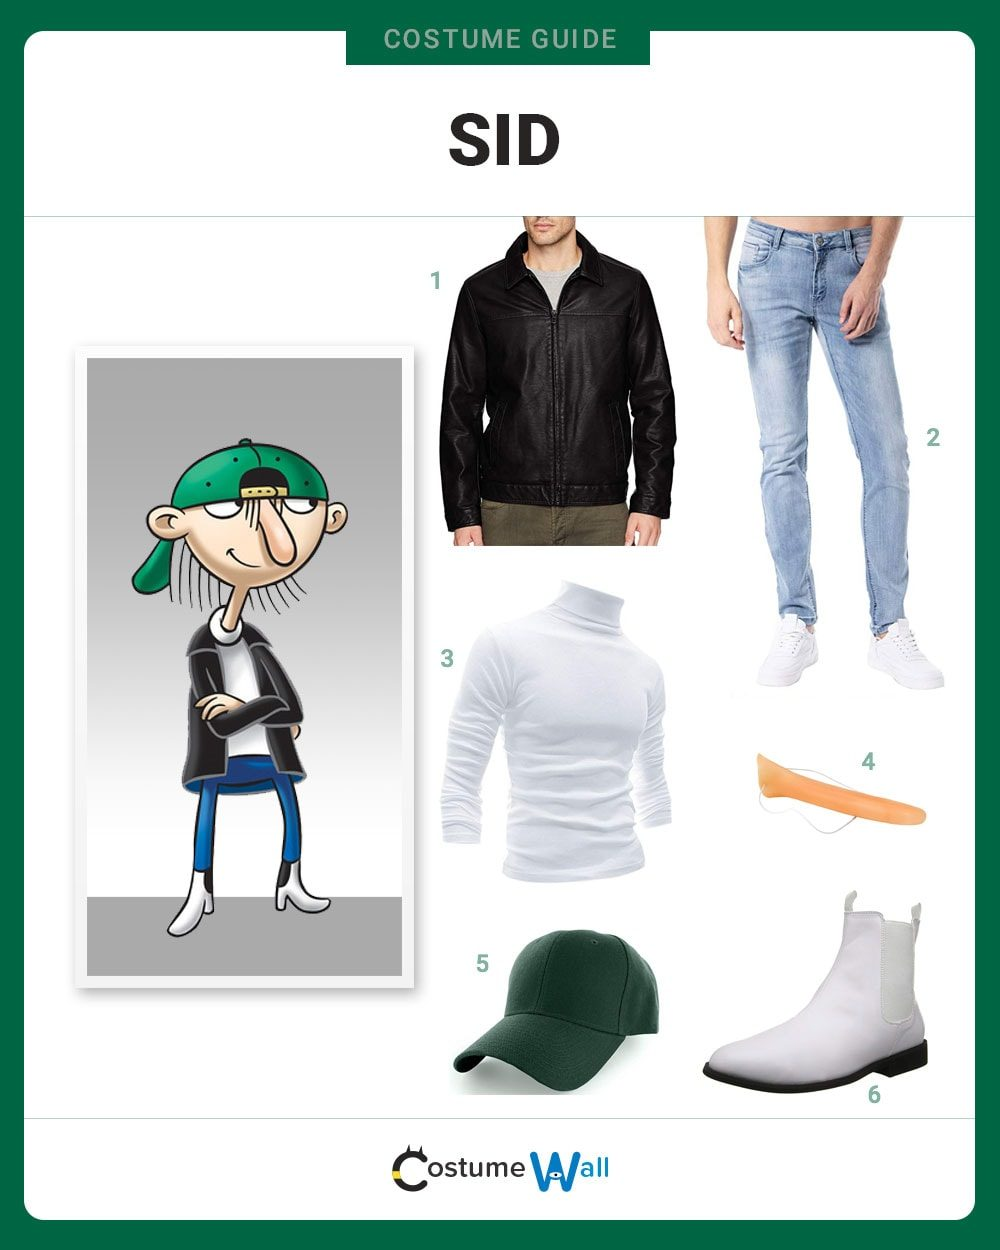 dress like sid from hey arnold! costume | halloween and cosplay guides